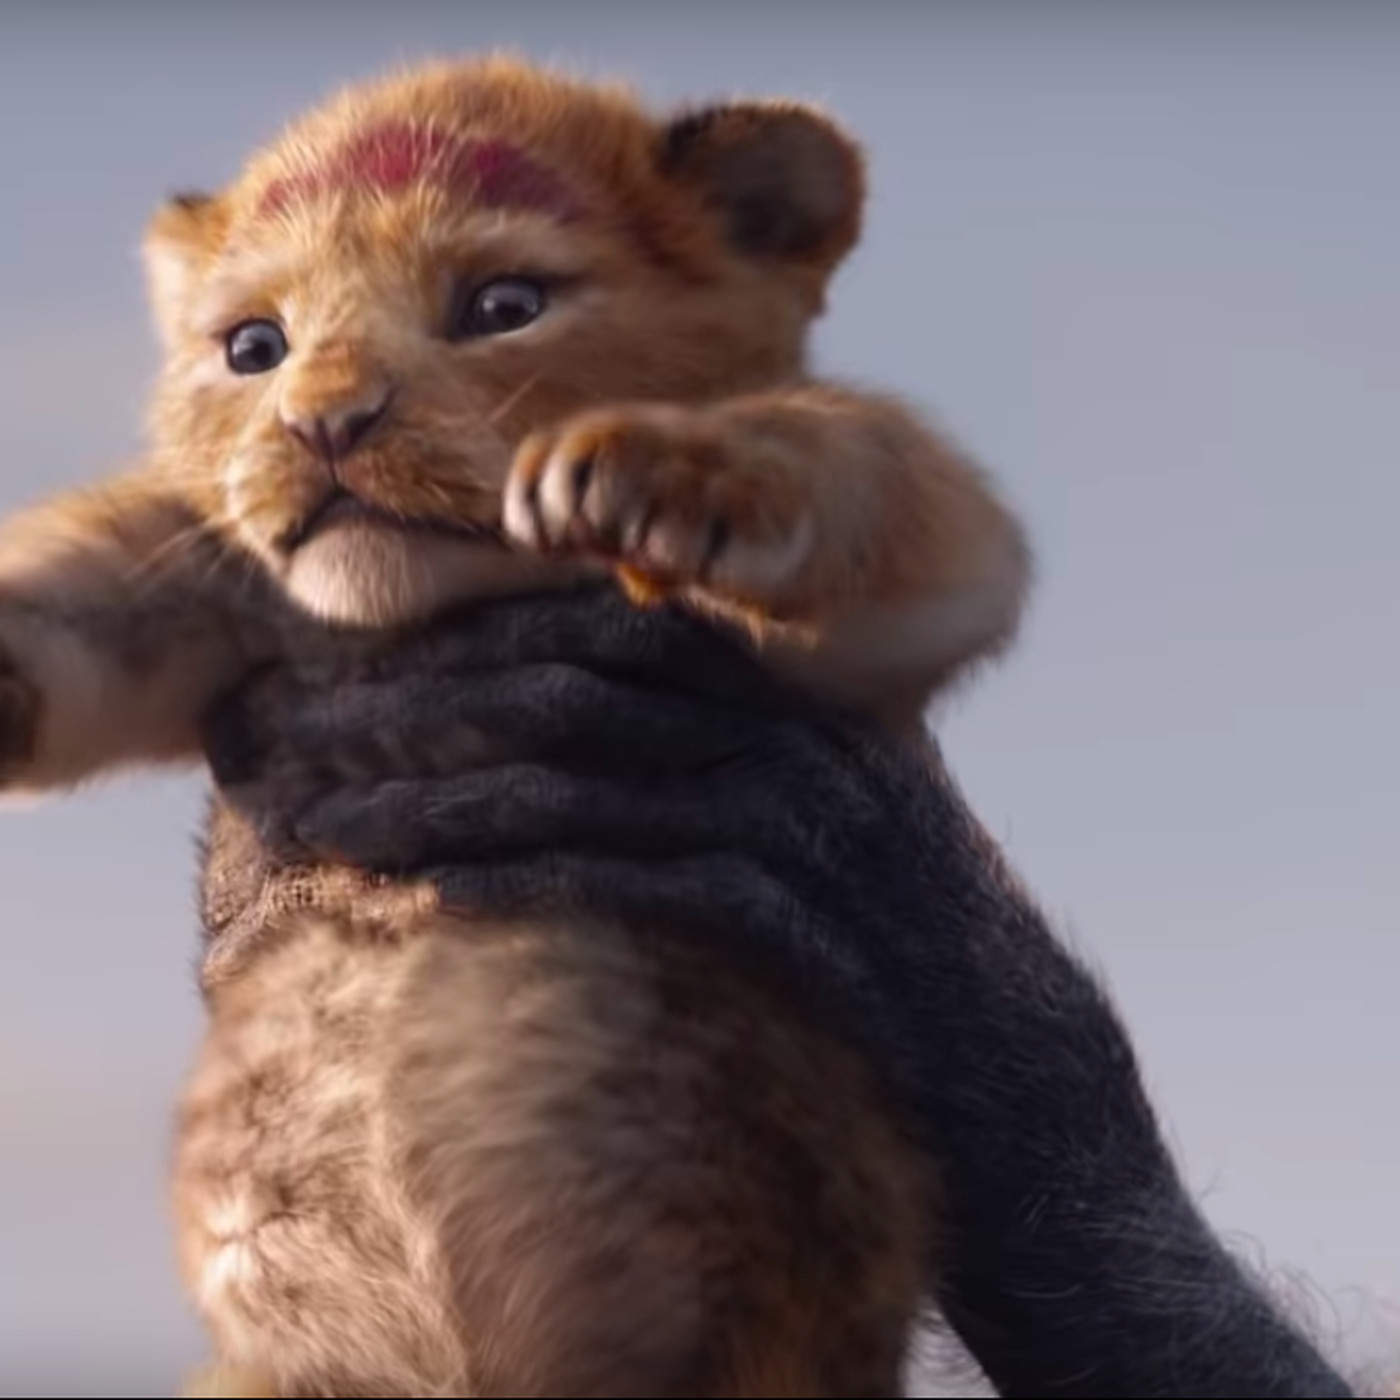 Is The New Disney Lion King Remake Live Action Or Cgi Yes